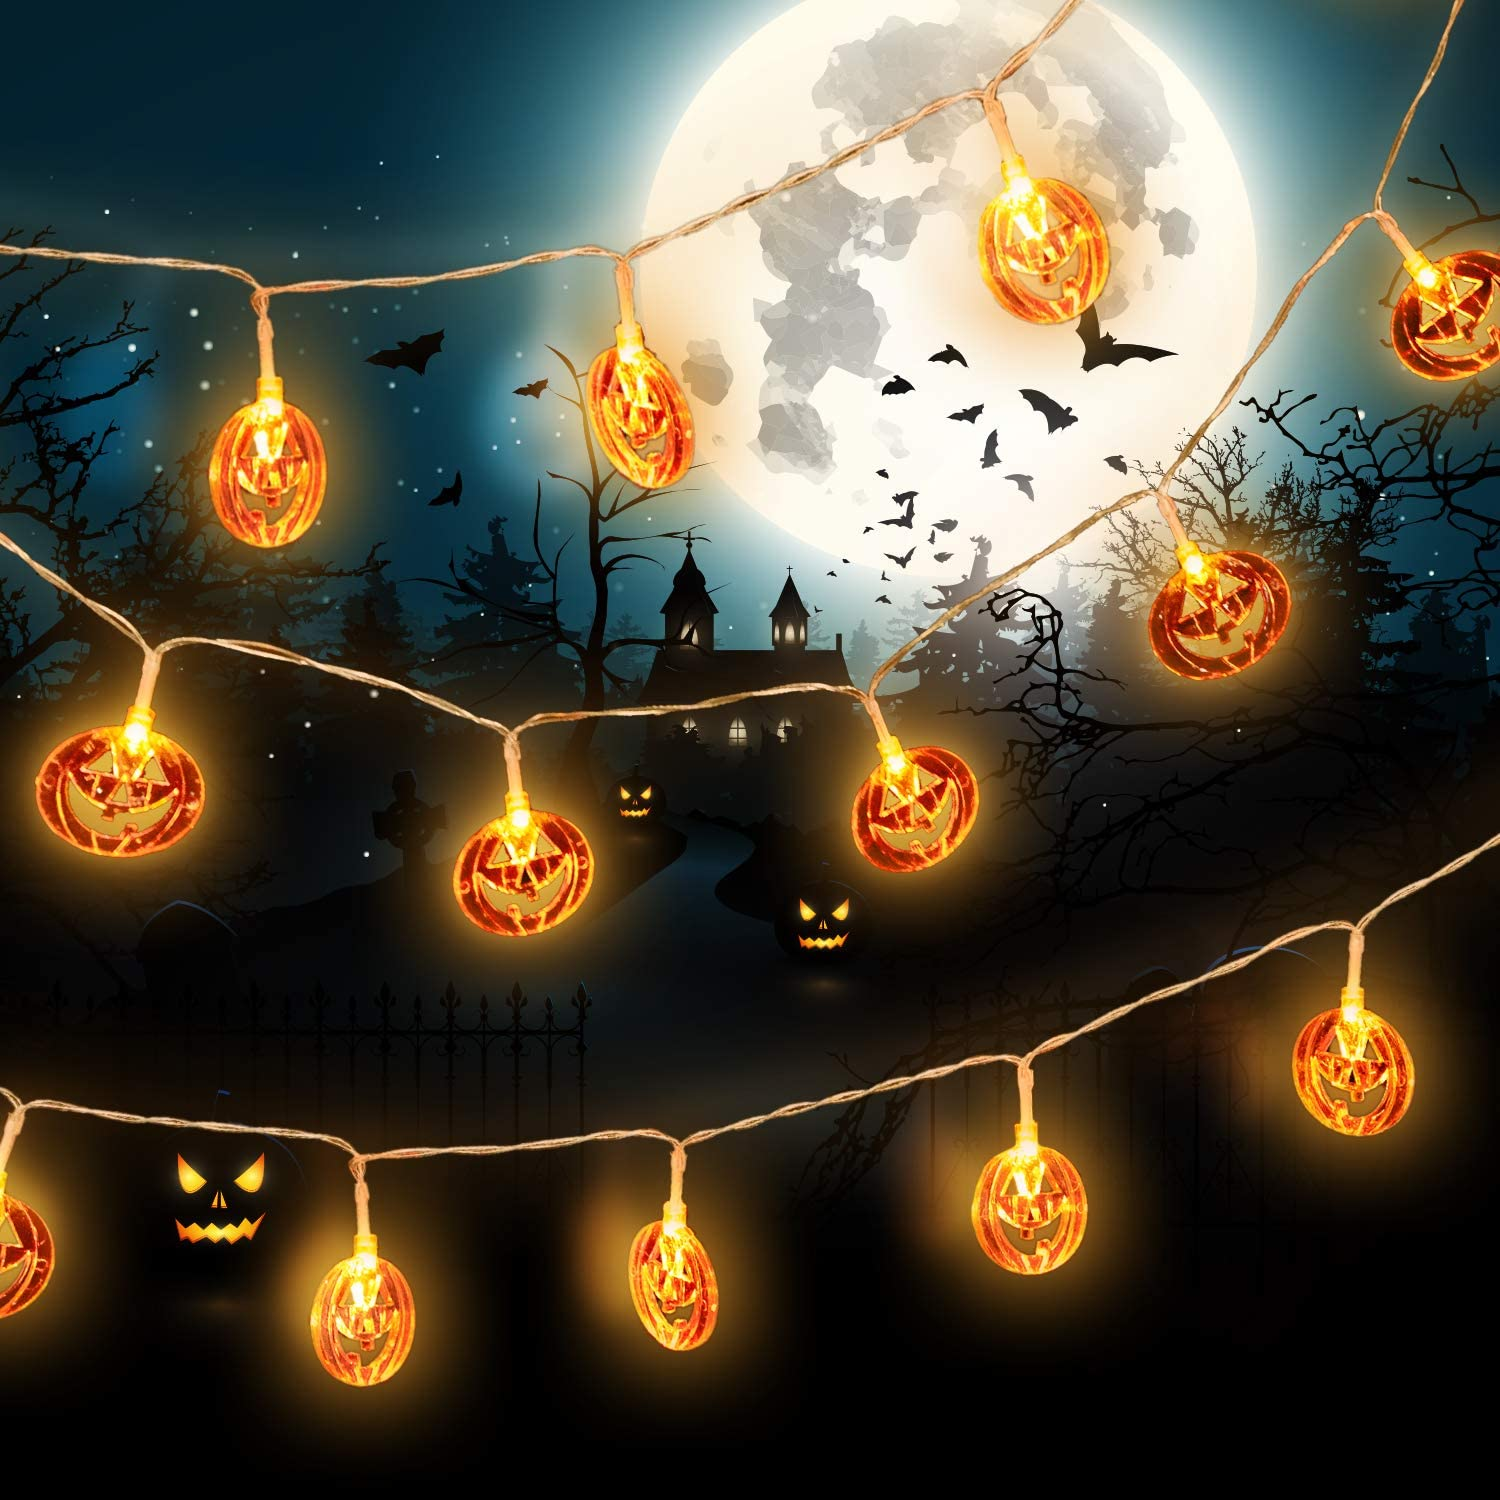 Delxo Pumpkin Gothic Decorations Lights, 20 LED Pumpkin String Lights 9.8 Feet for Horror Theme Party Outdoor & Indoor, Battery Powered 2 Modes Steady/Flickering Lights Waterproof Decorate Pumpkin